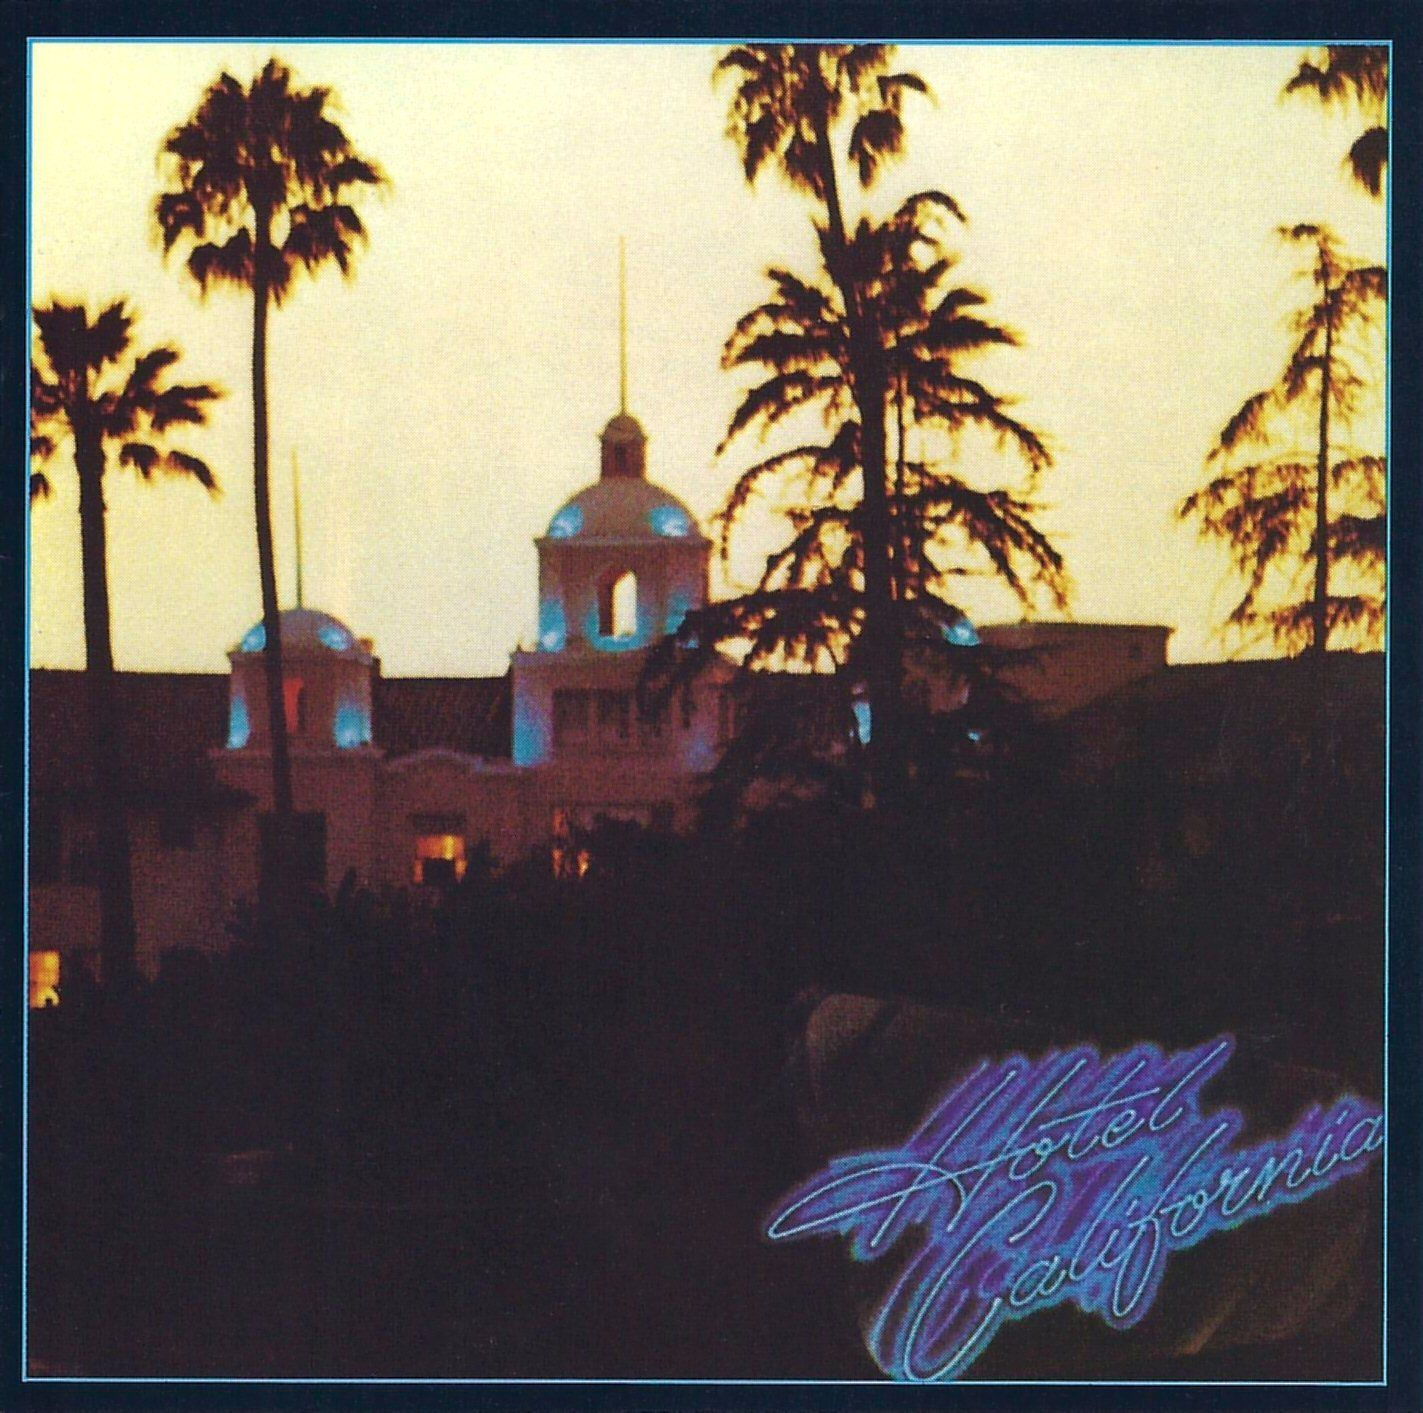 Eagles - Hotel California album cover